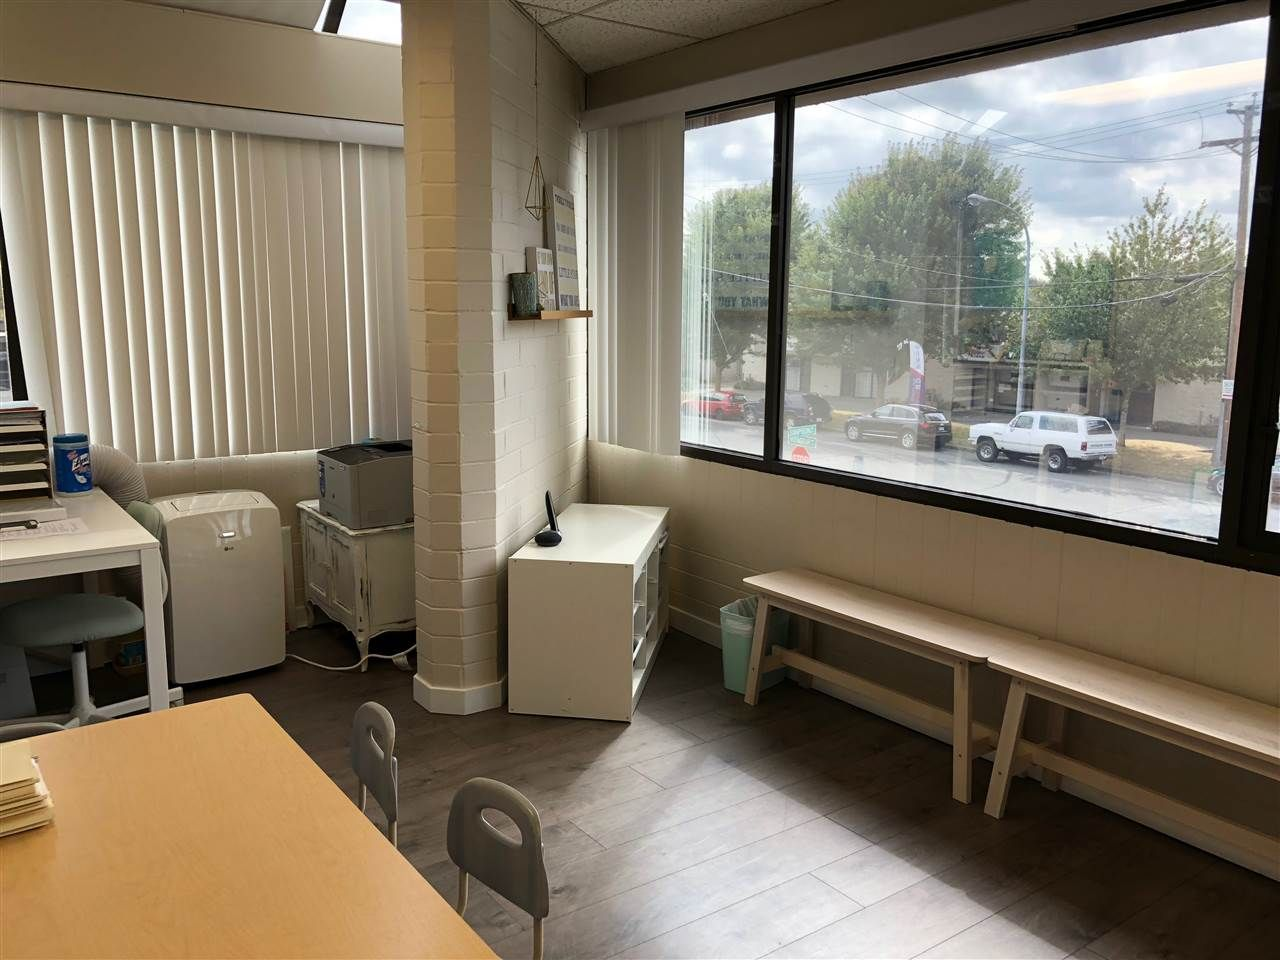 Photo 9: Photos: 207 11240 BRIDGEPORT ROAD in Richmond: East Cambie Office for lease : MLS®# C8020662